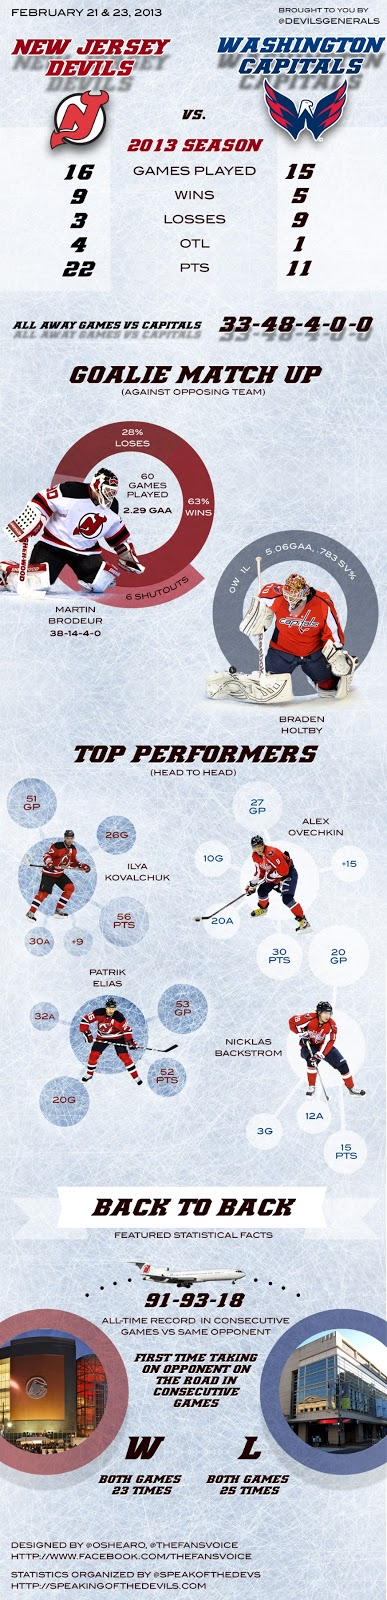 Devils Infographic vs Washington Capitals